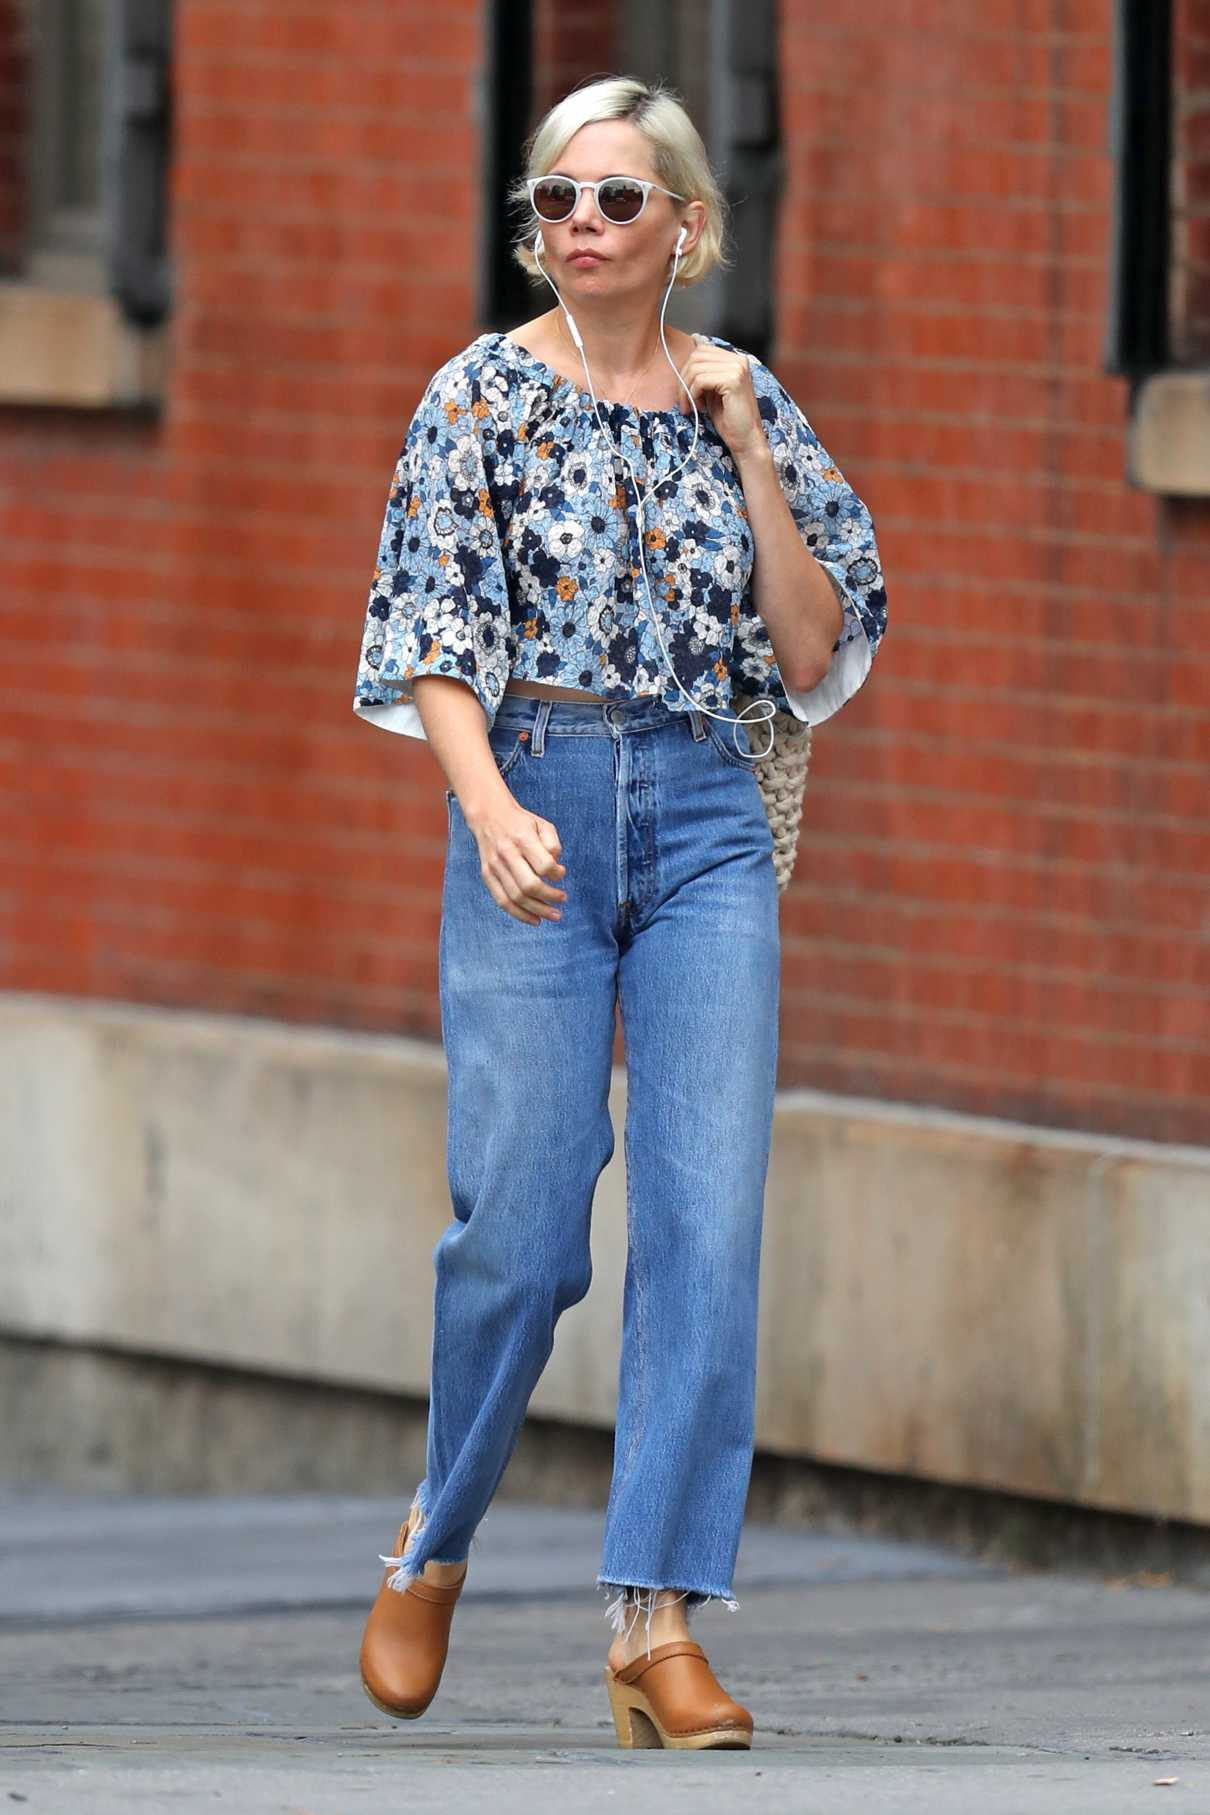 Michelle Williams in a Floral Blouse